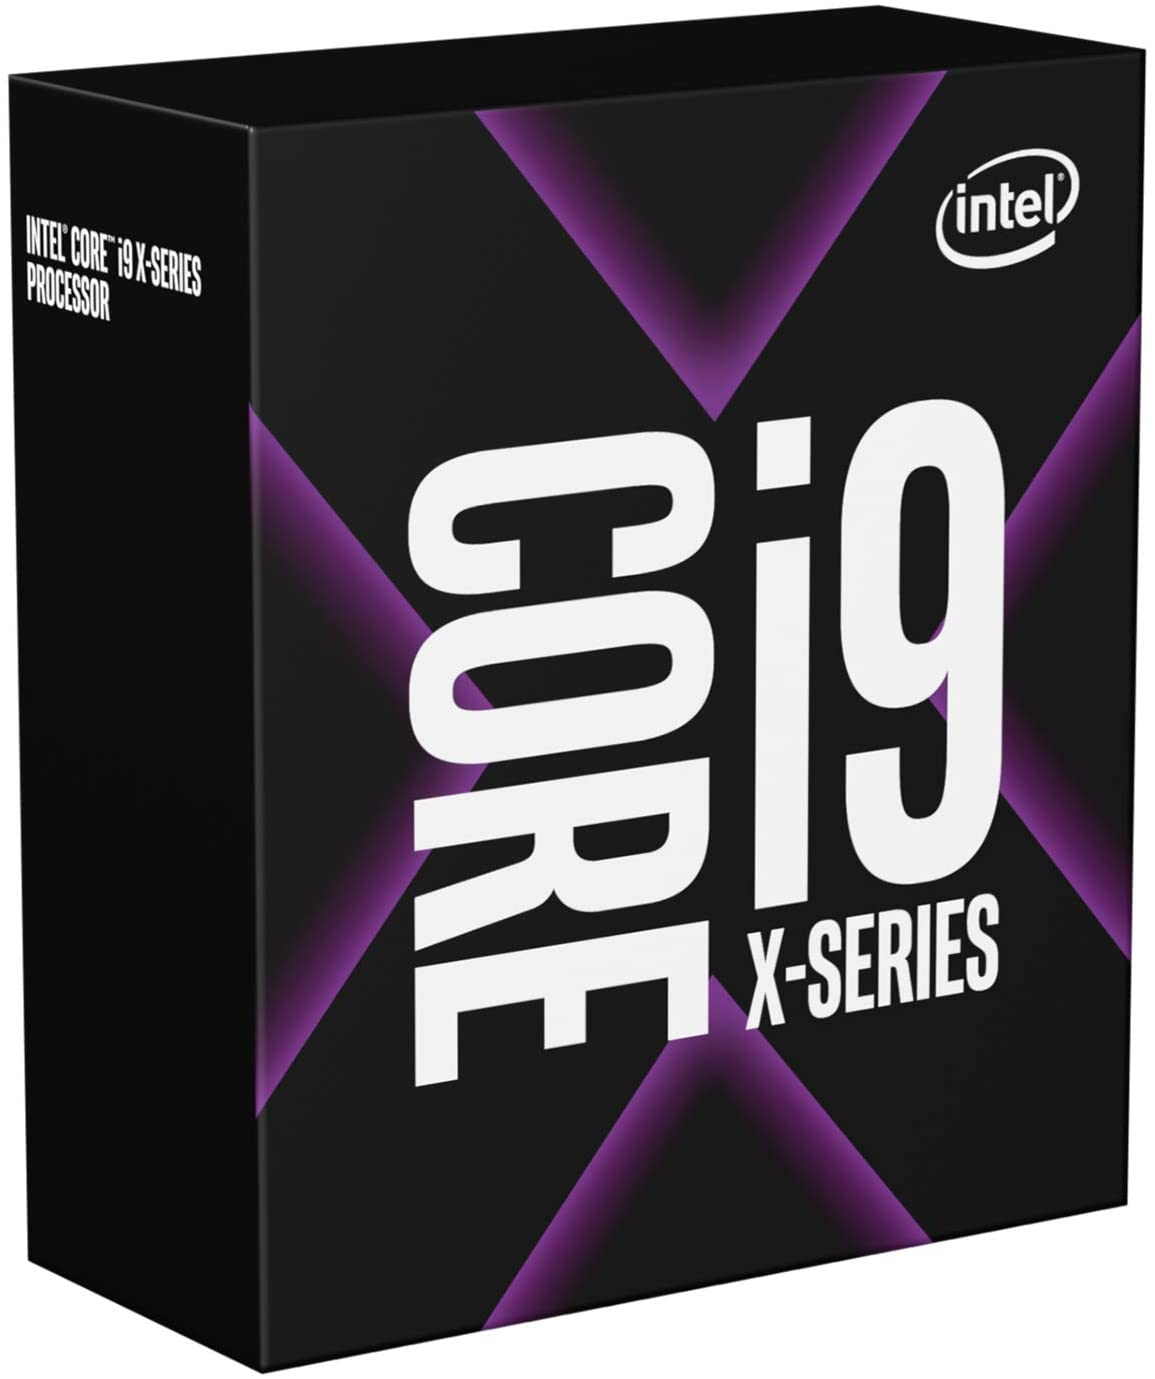 Intel Core i9-10900X Desktop Processor 10 Cores up to 4.7GHz Unlocked LGA2066 X299 Series 165W (BX8069510900X)